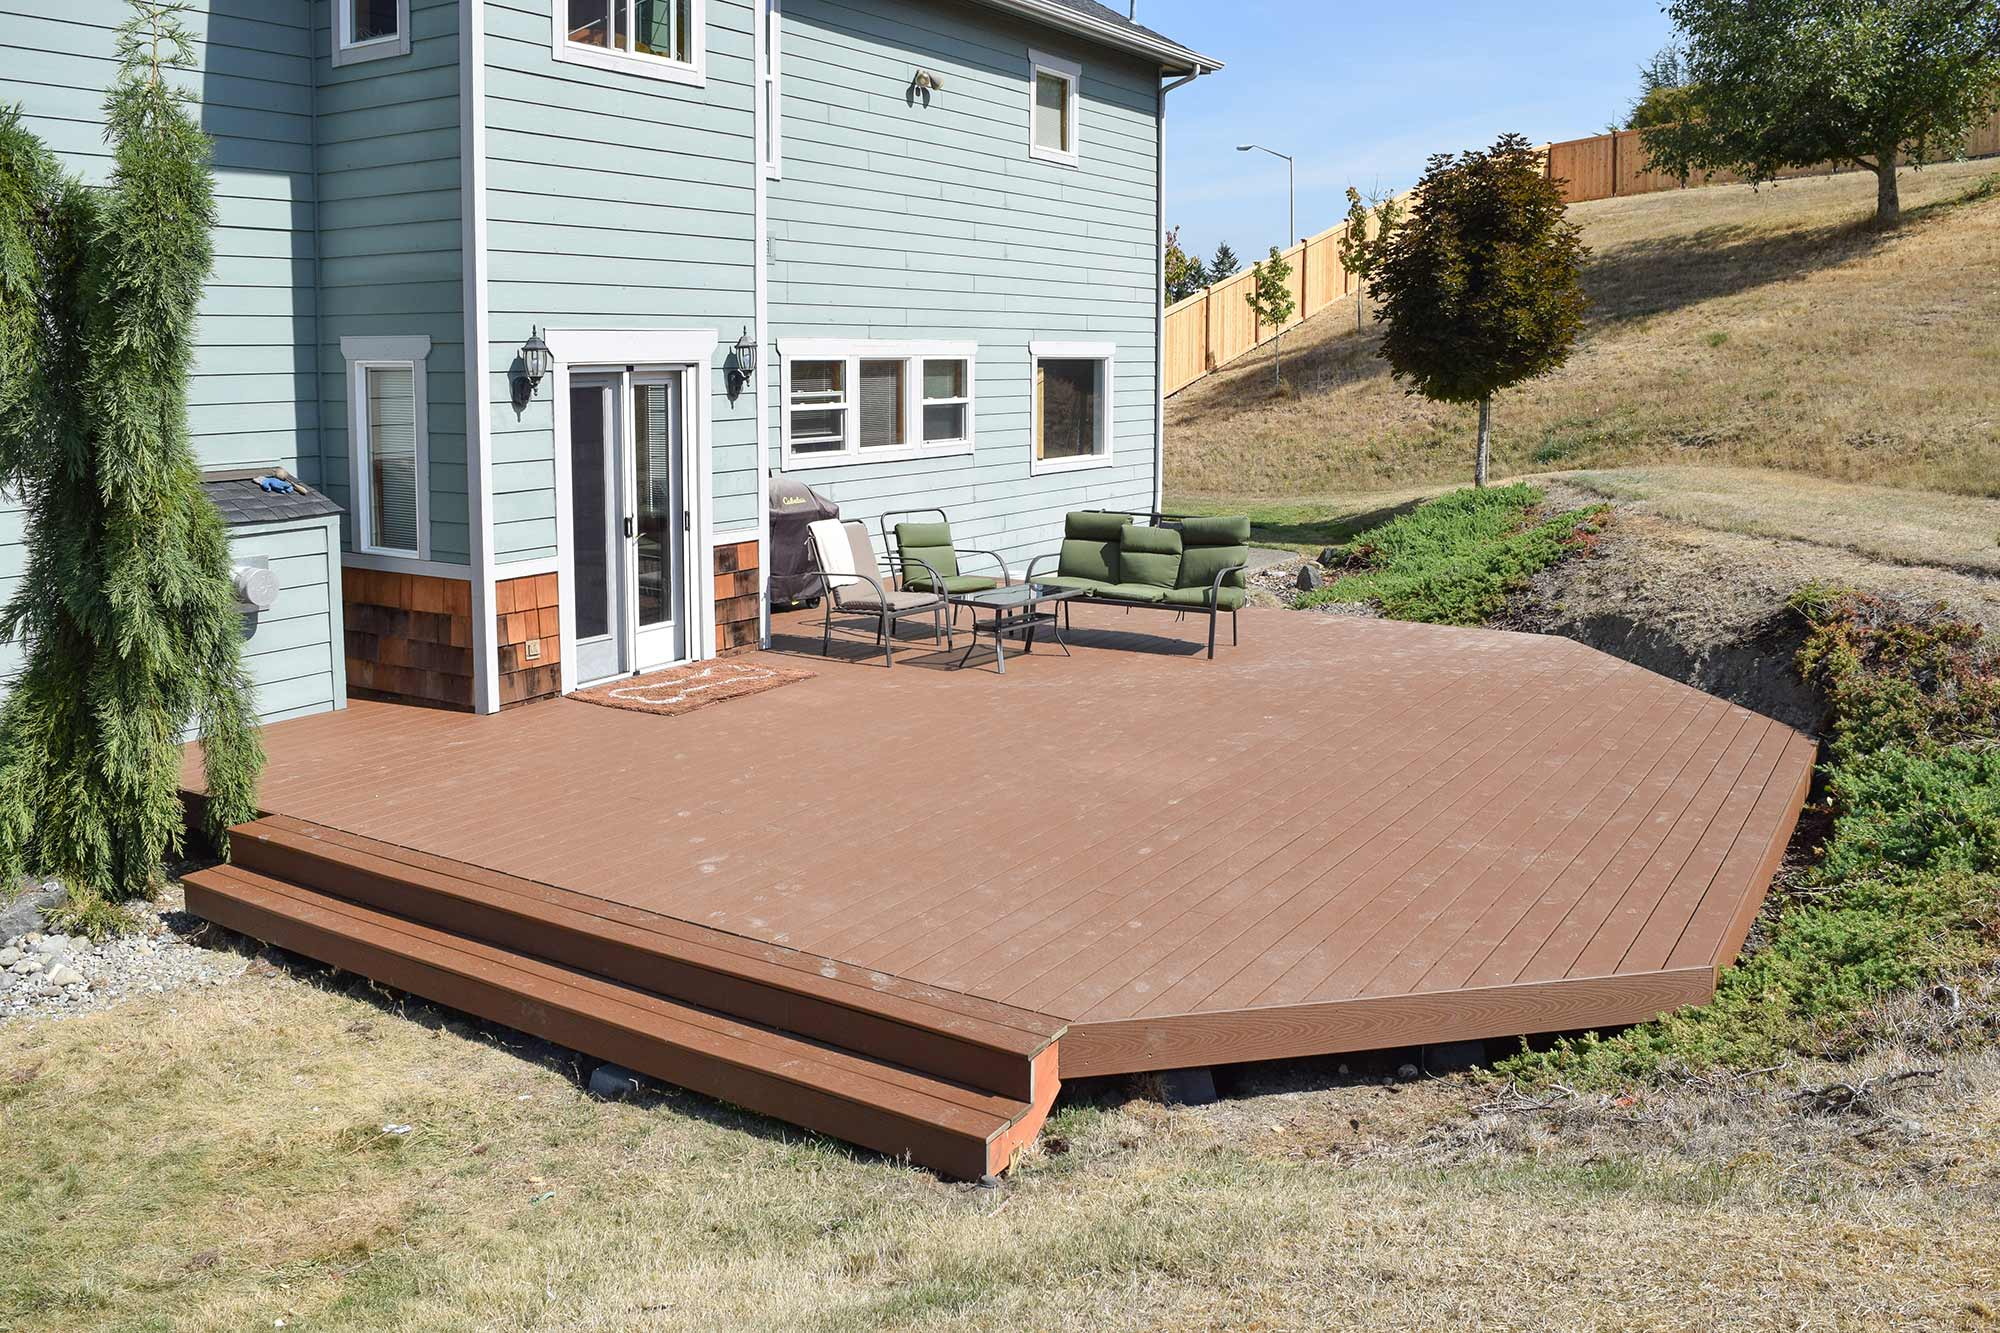 wood learning patio fresh deck backyard and amazing elegant or designs of design